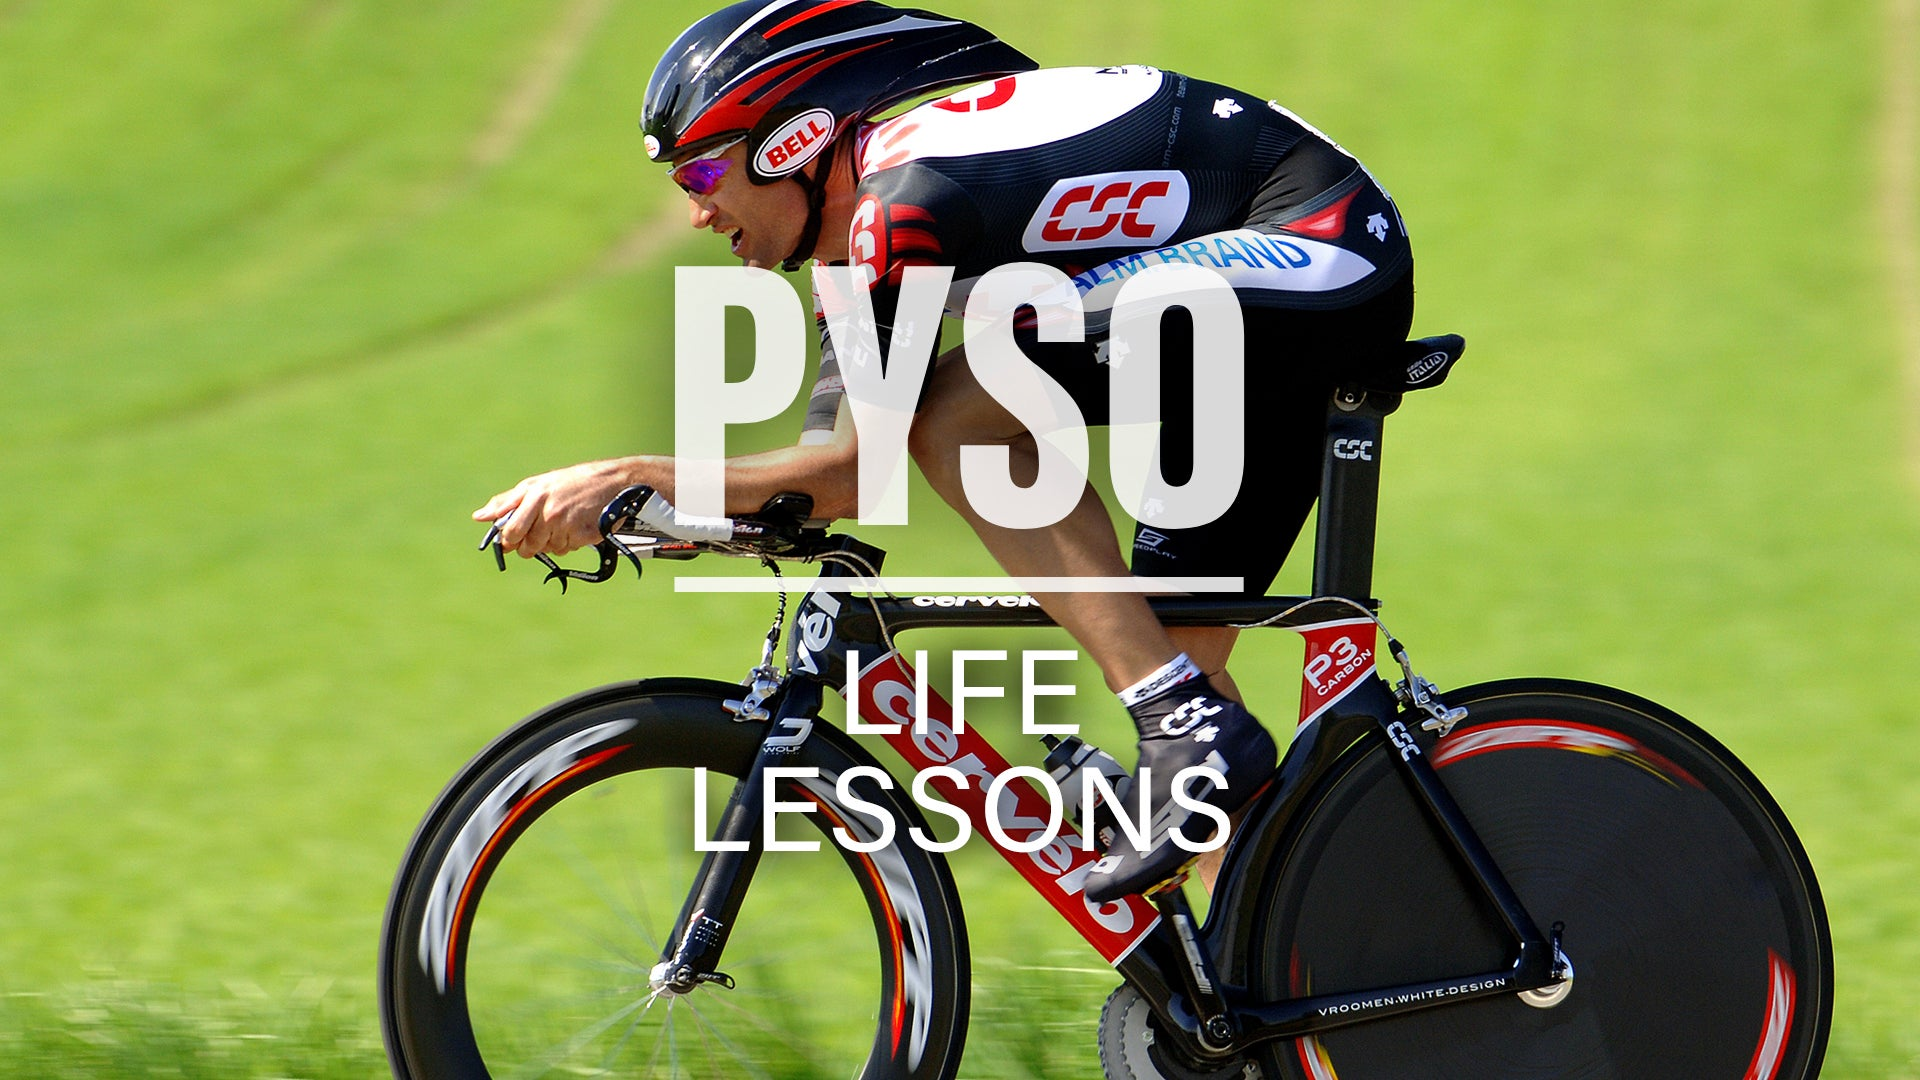 PYSO, ep. 63: Julich reflects on mistakes, successes, and helping others – VeloNews.com